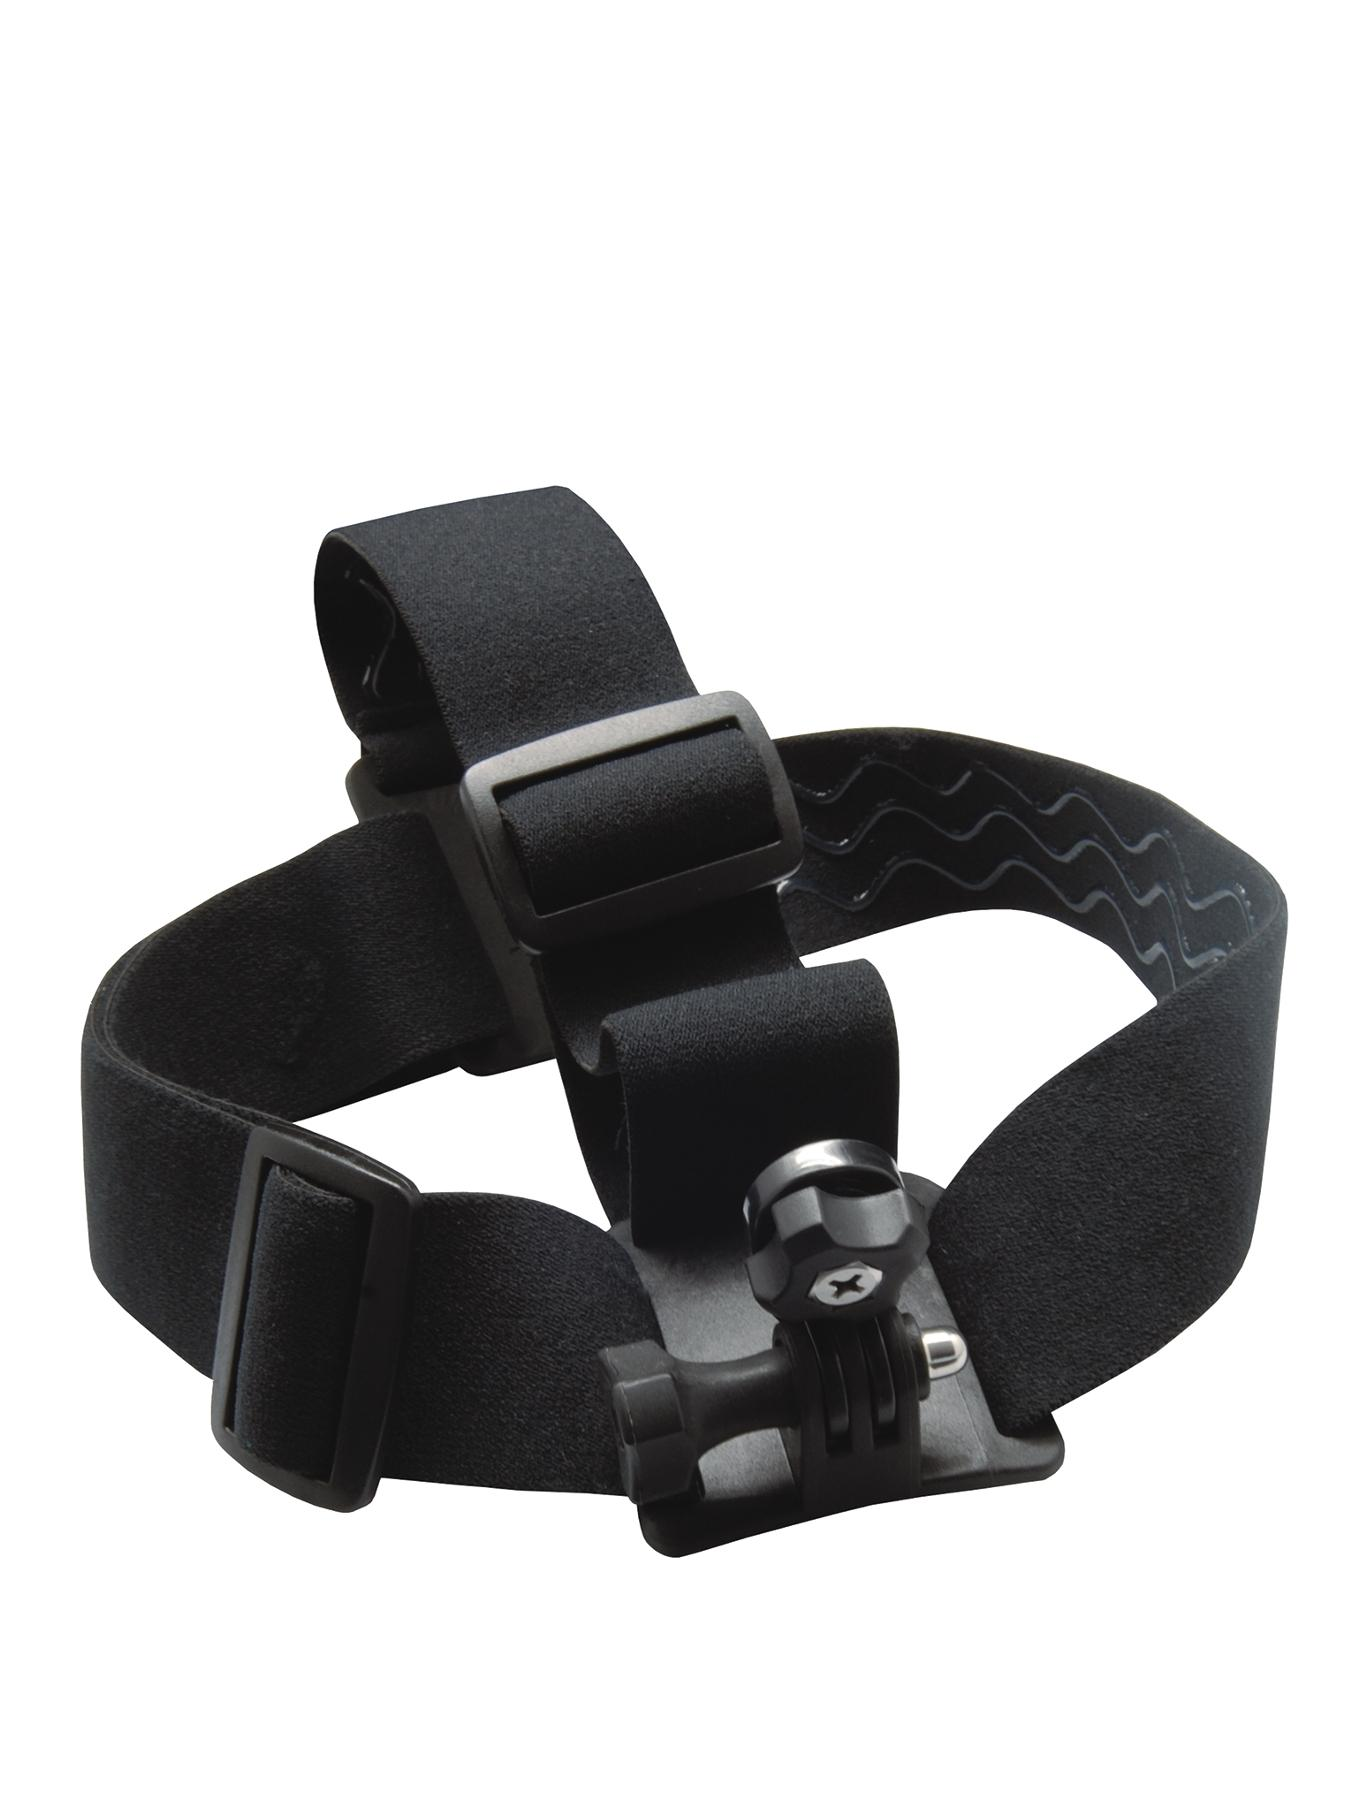 AEE Adjustable Head Strap Helmet Mount for MagiCam Video Cameras